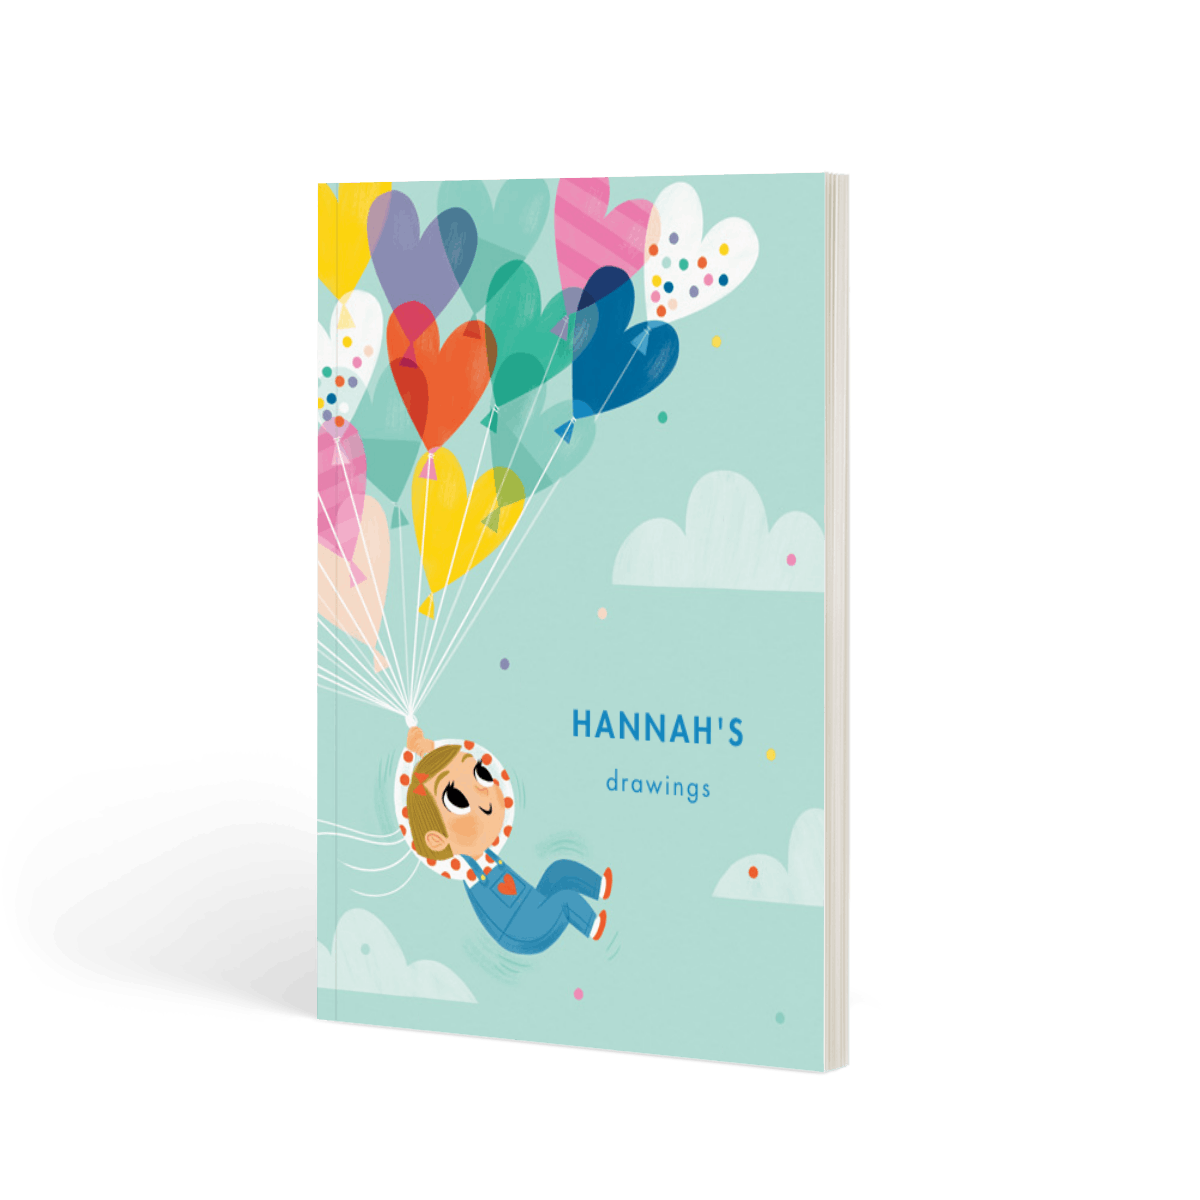 Https%3a%2f%2fwww.papier.com%2fproduct image%2f31701%2f3%2fballoon girl iii 7964 front 1511526699.png?ixlib=rb 1.1